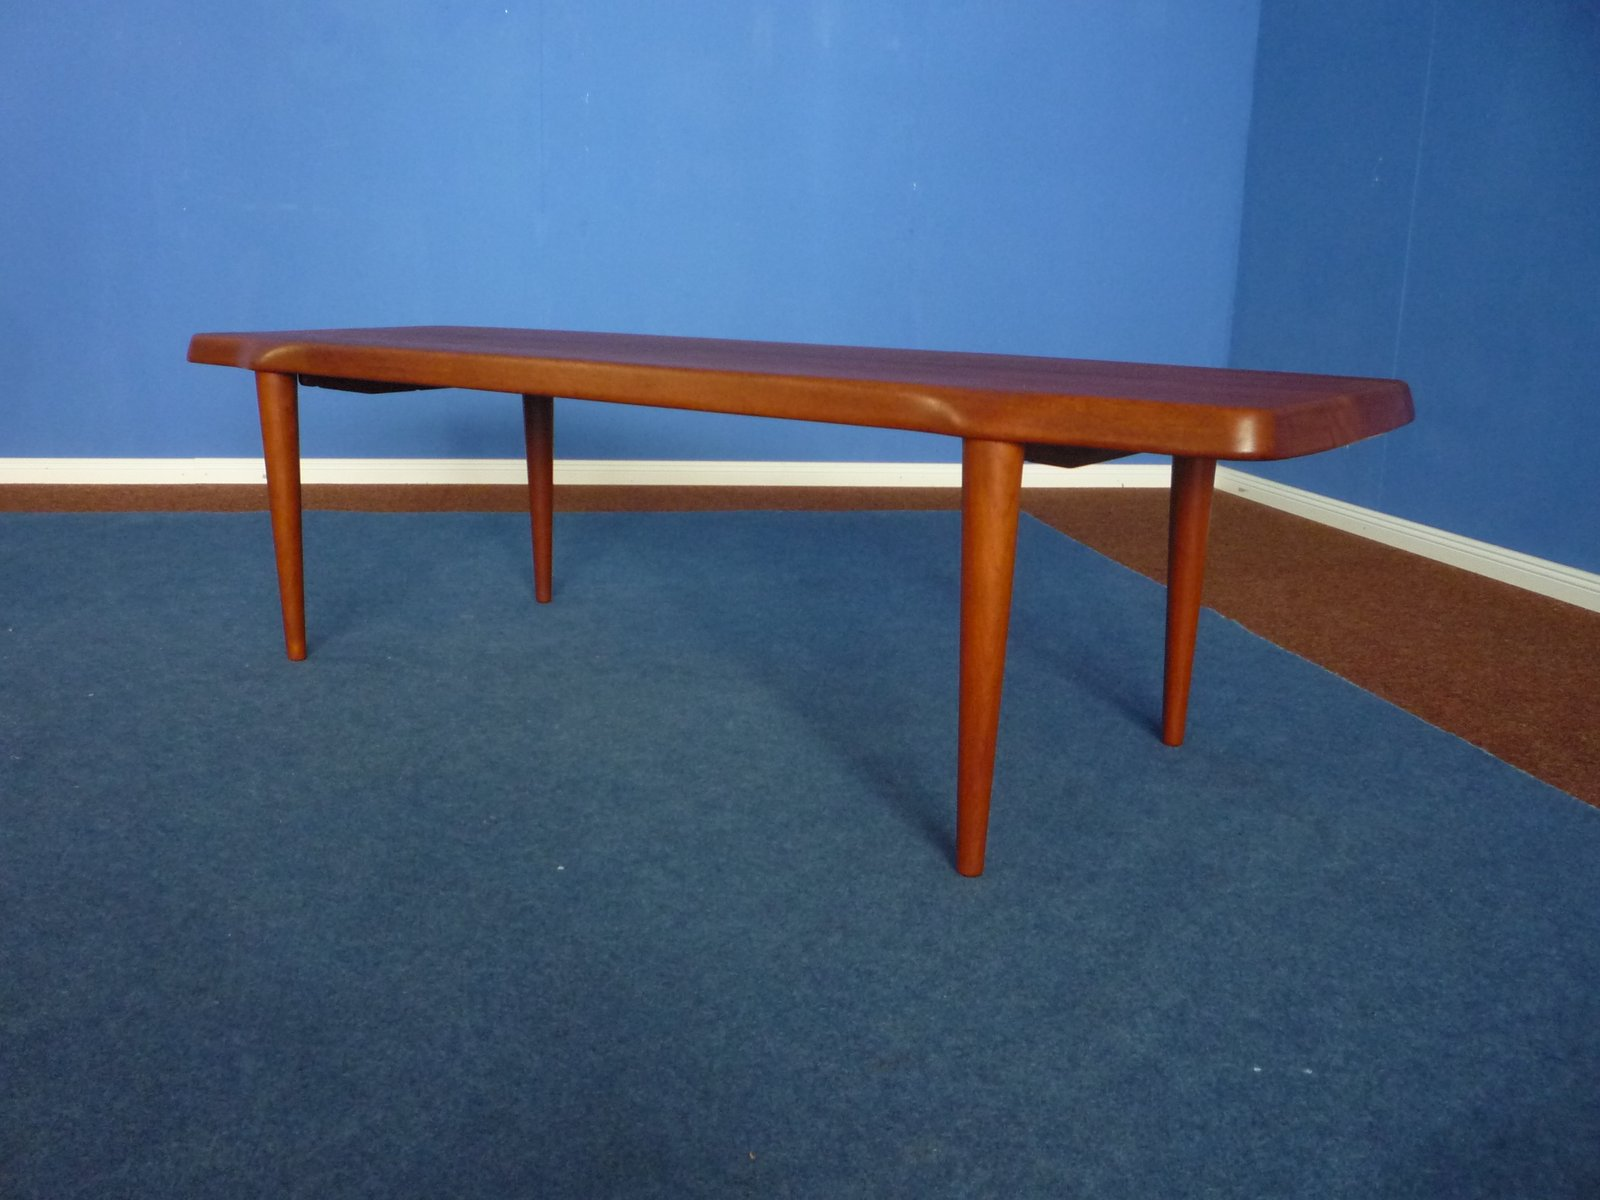 Danish Teak Coffee Table By John Bone For Mikael Laursen 1960s For Sale At Pamono